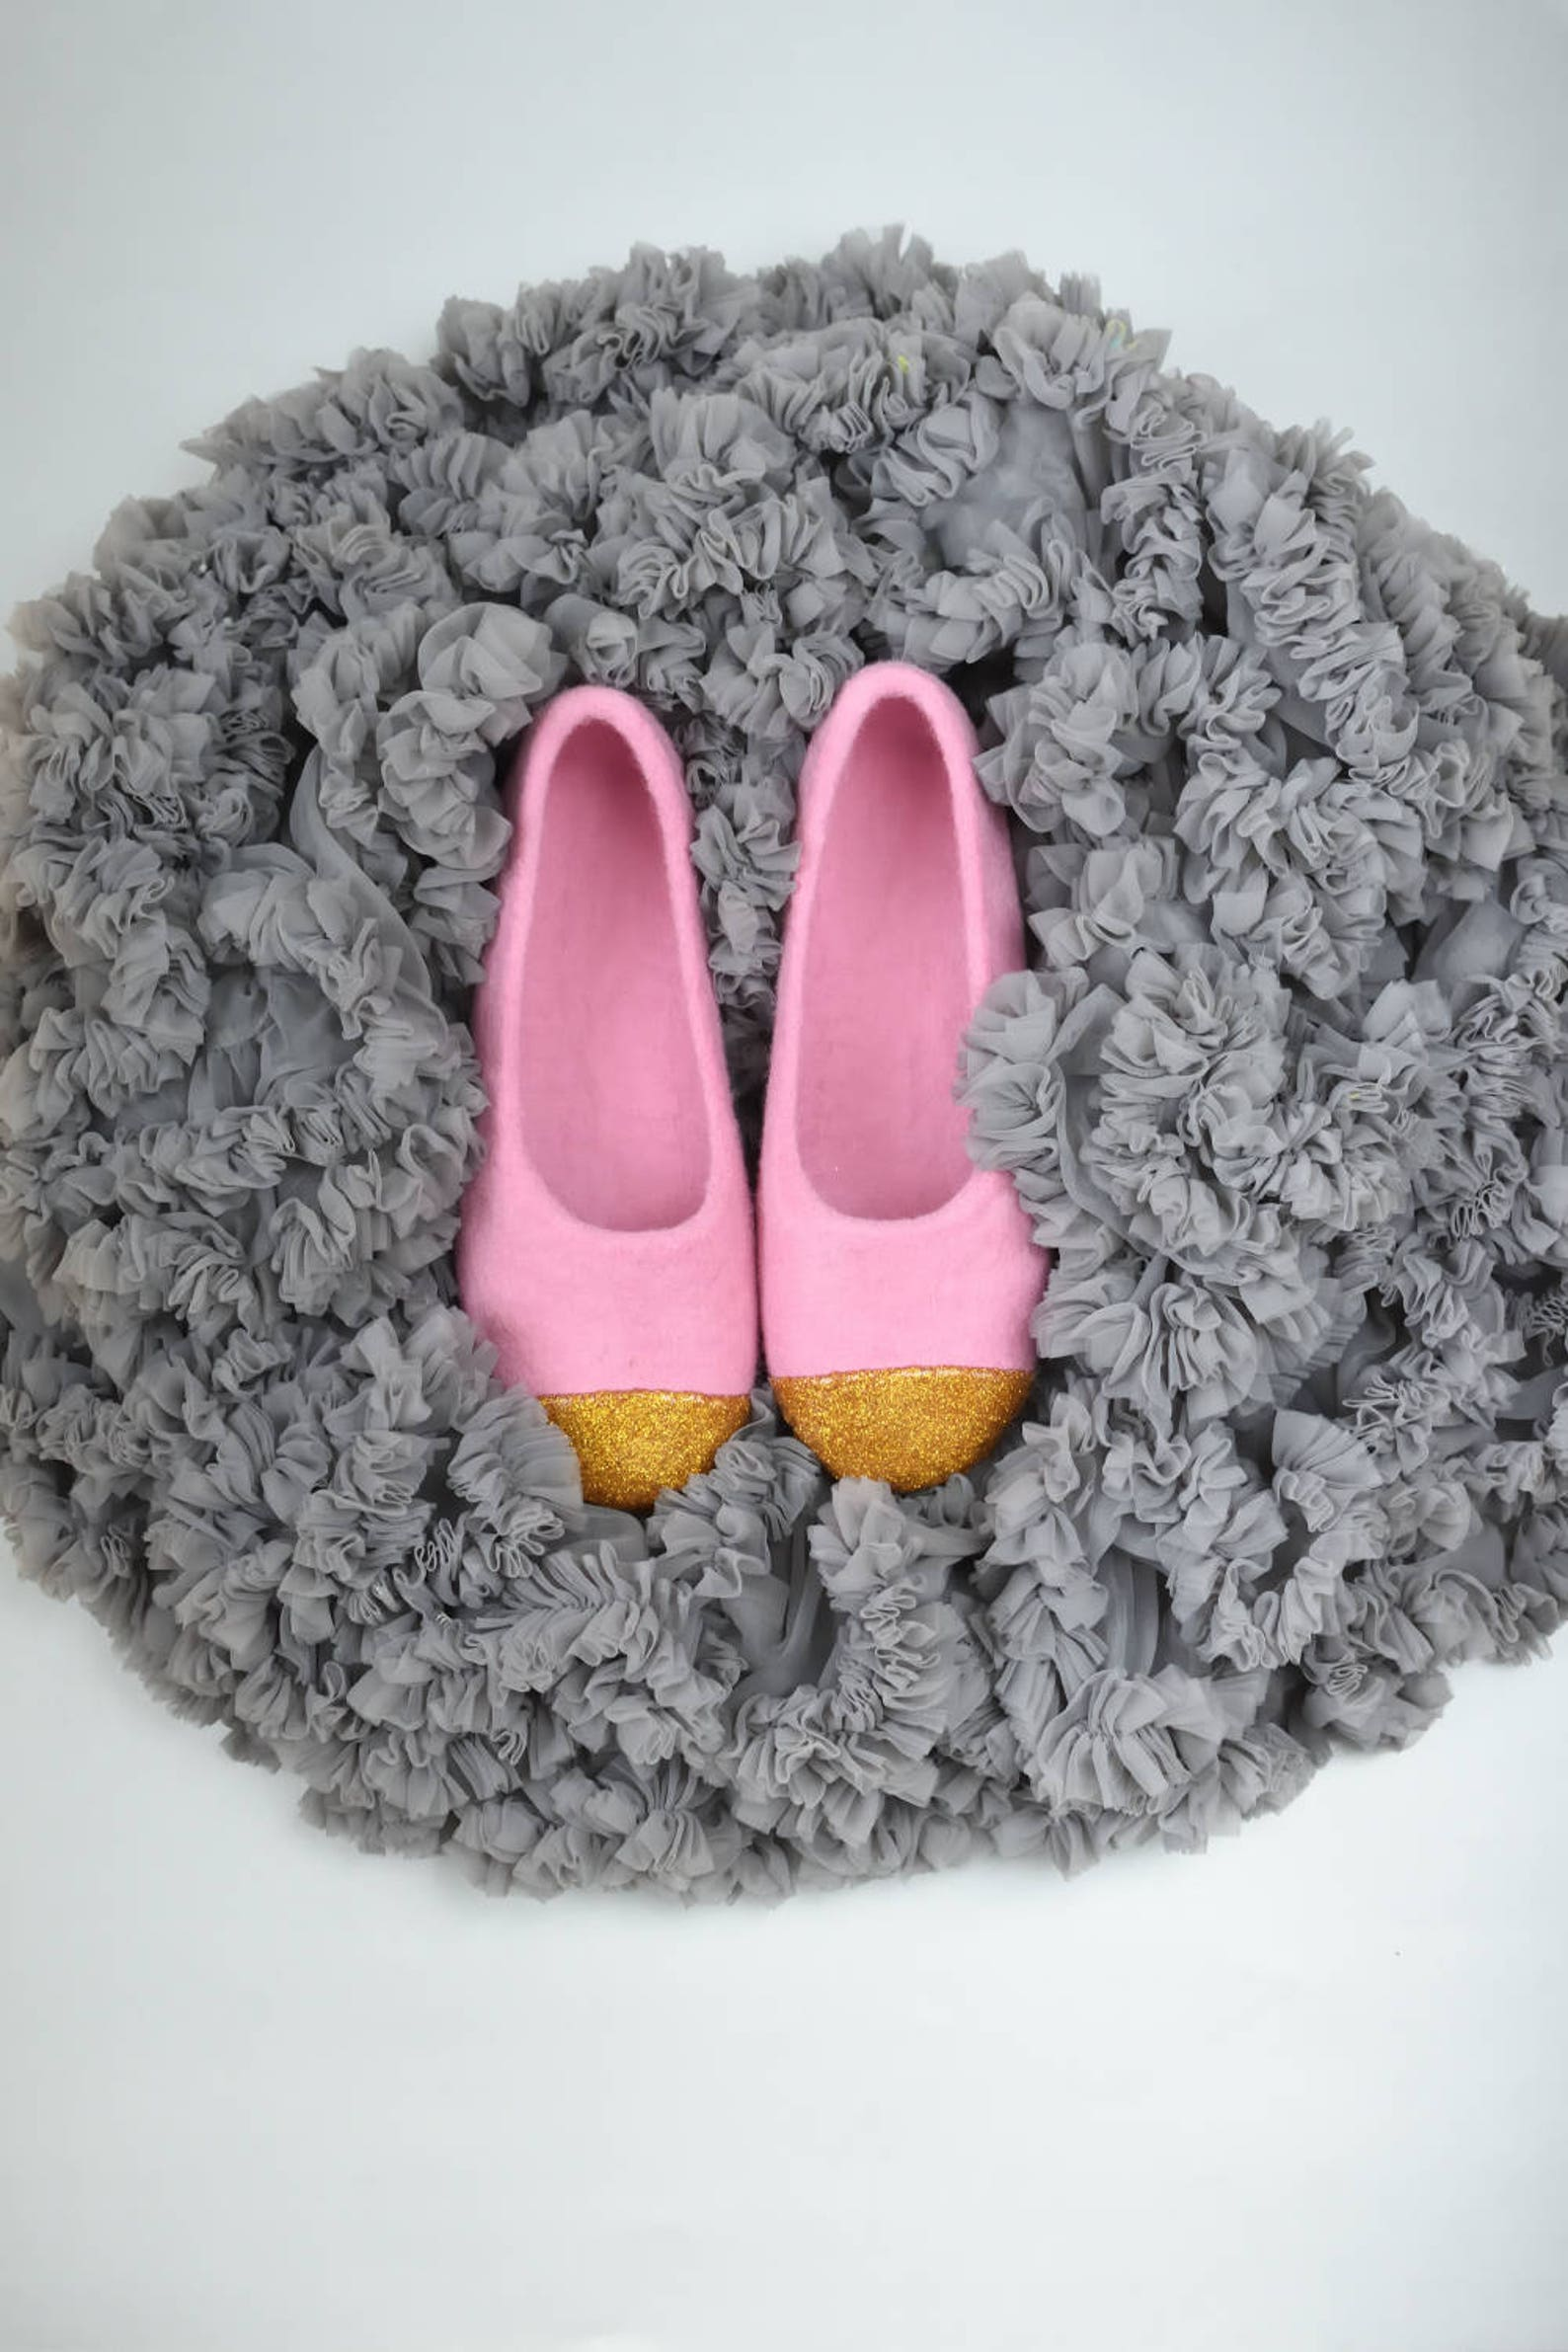 pink felt slippers for women felted ballet flats - felted slippers with gold glitter decoration hand dyed organic wool slippers